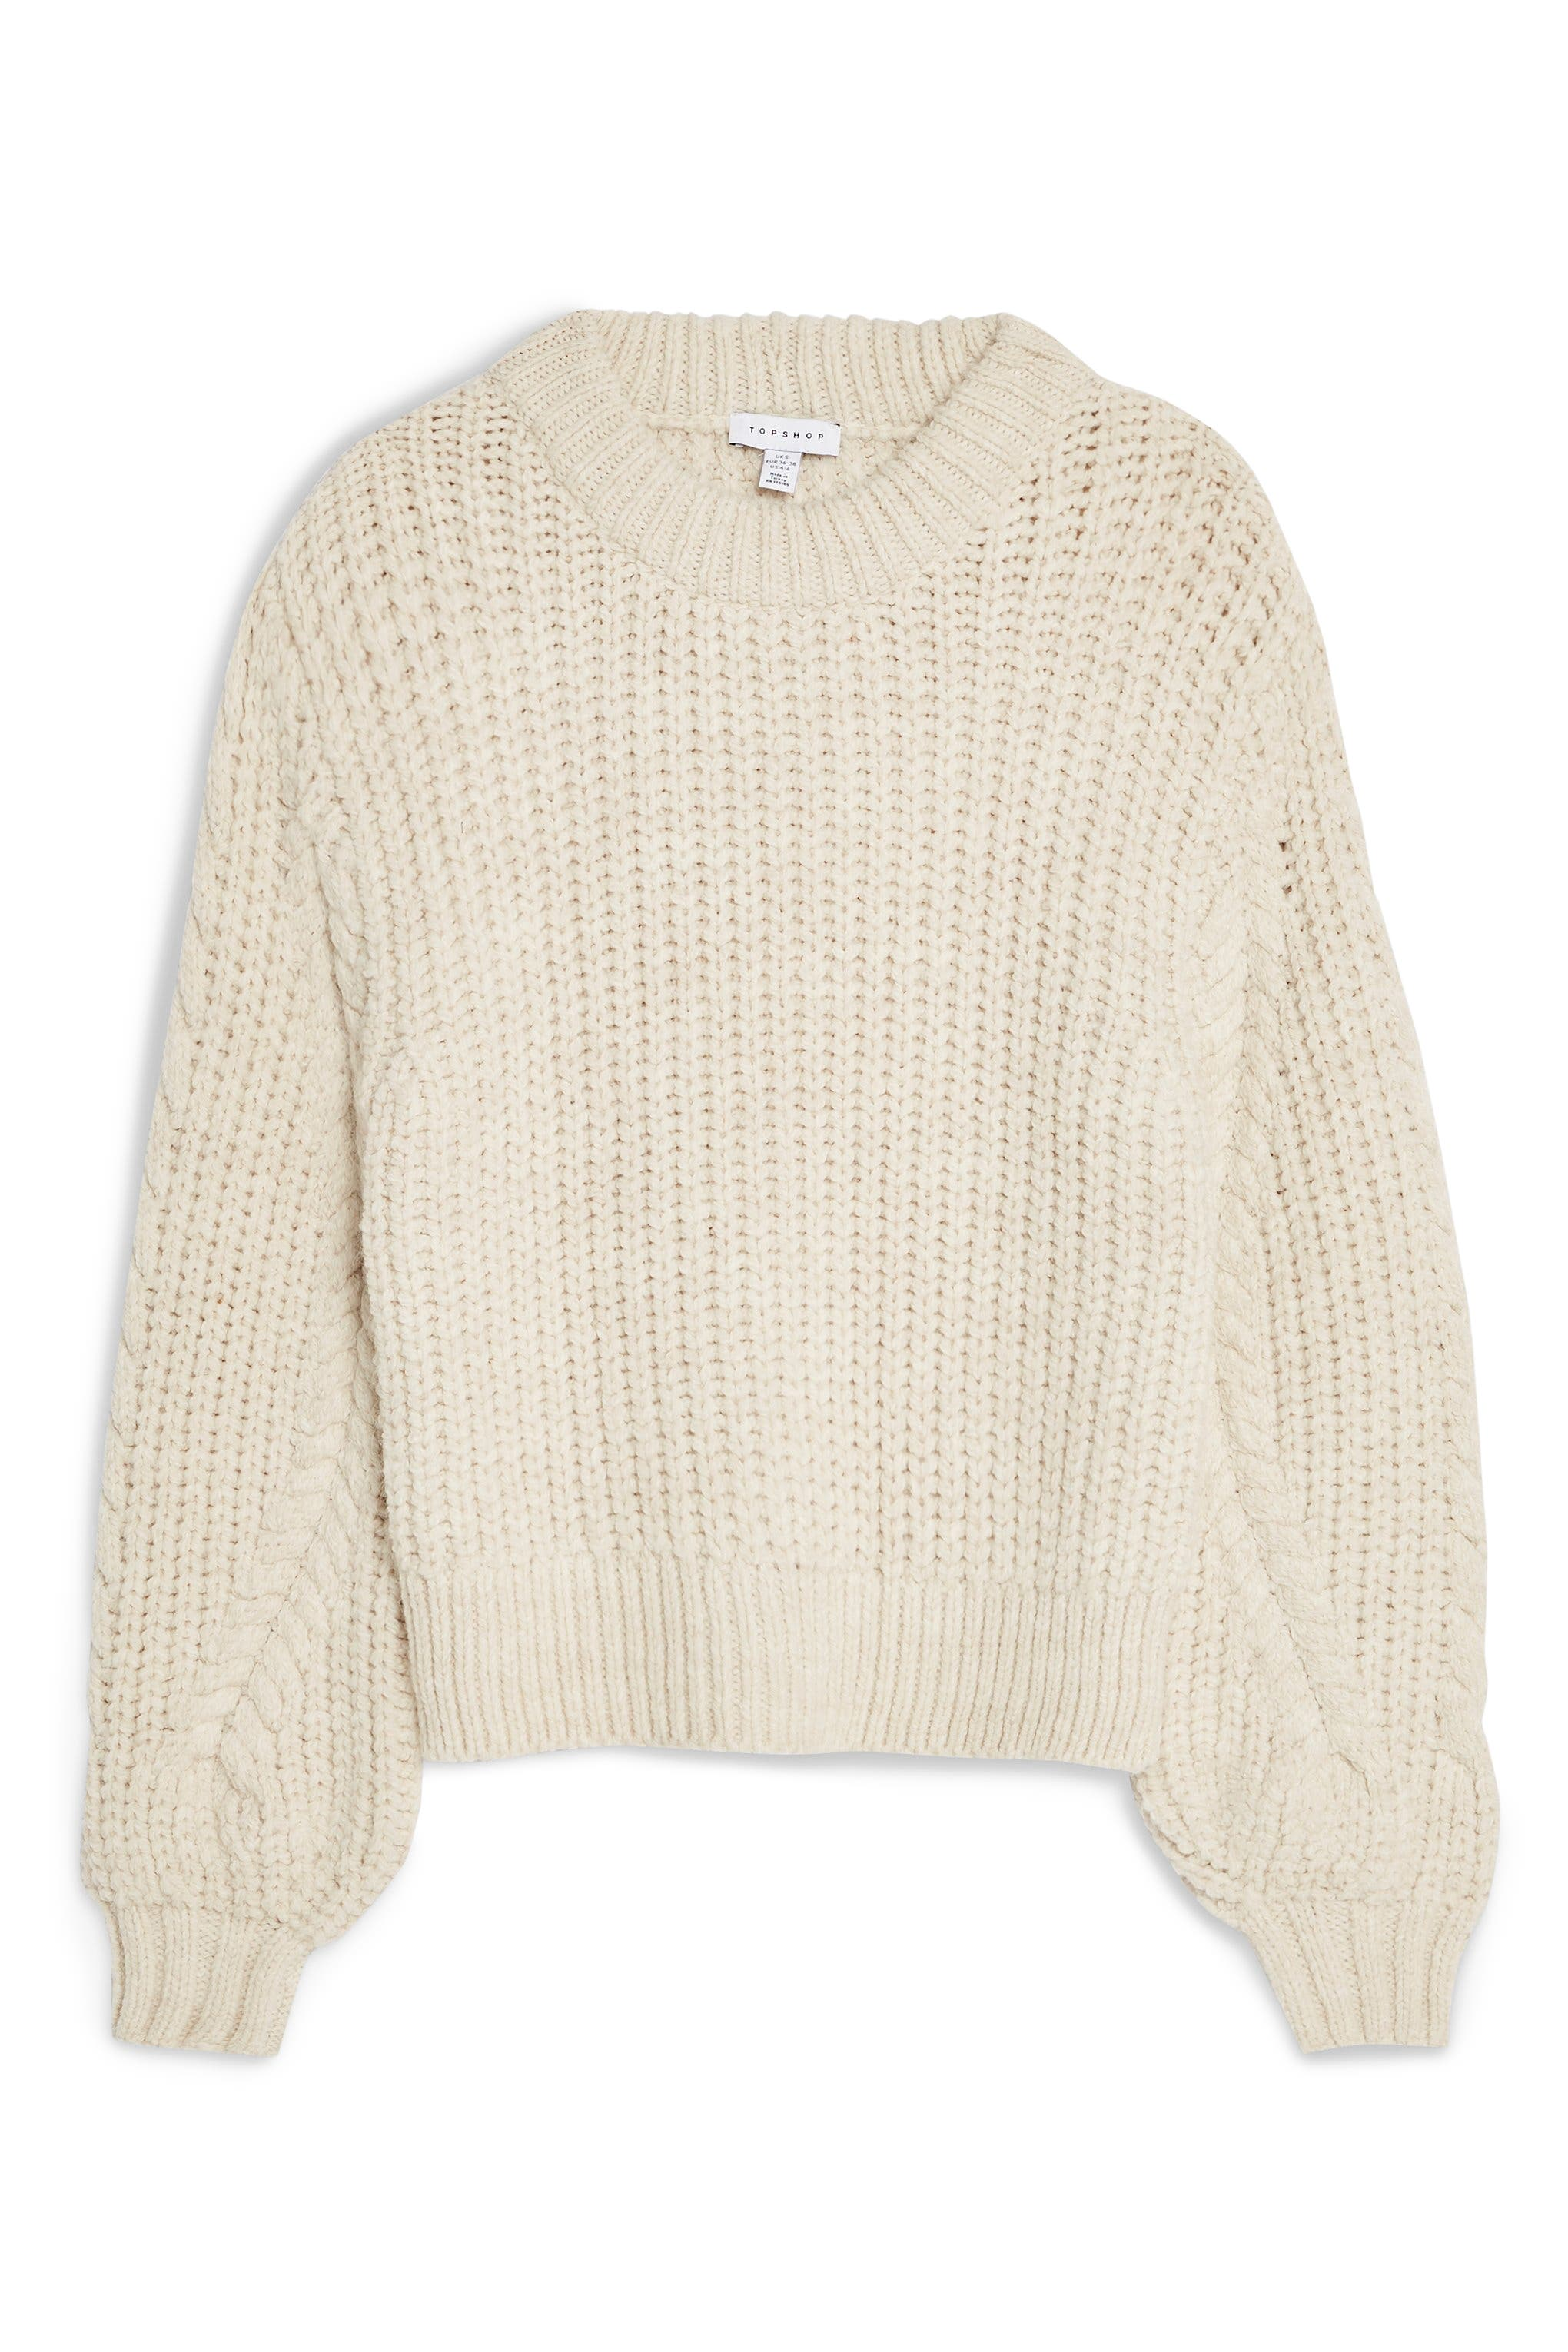 TOPSHOP, Bishop Sleeve Cable Knit Sweater, Alternate thumbnail 4, color, 251